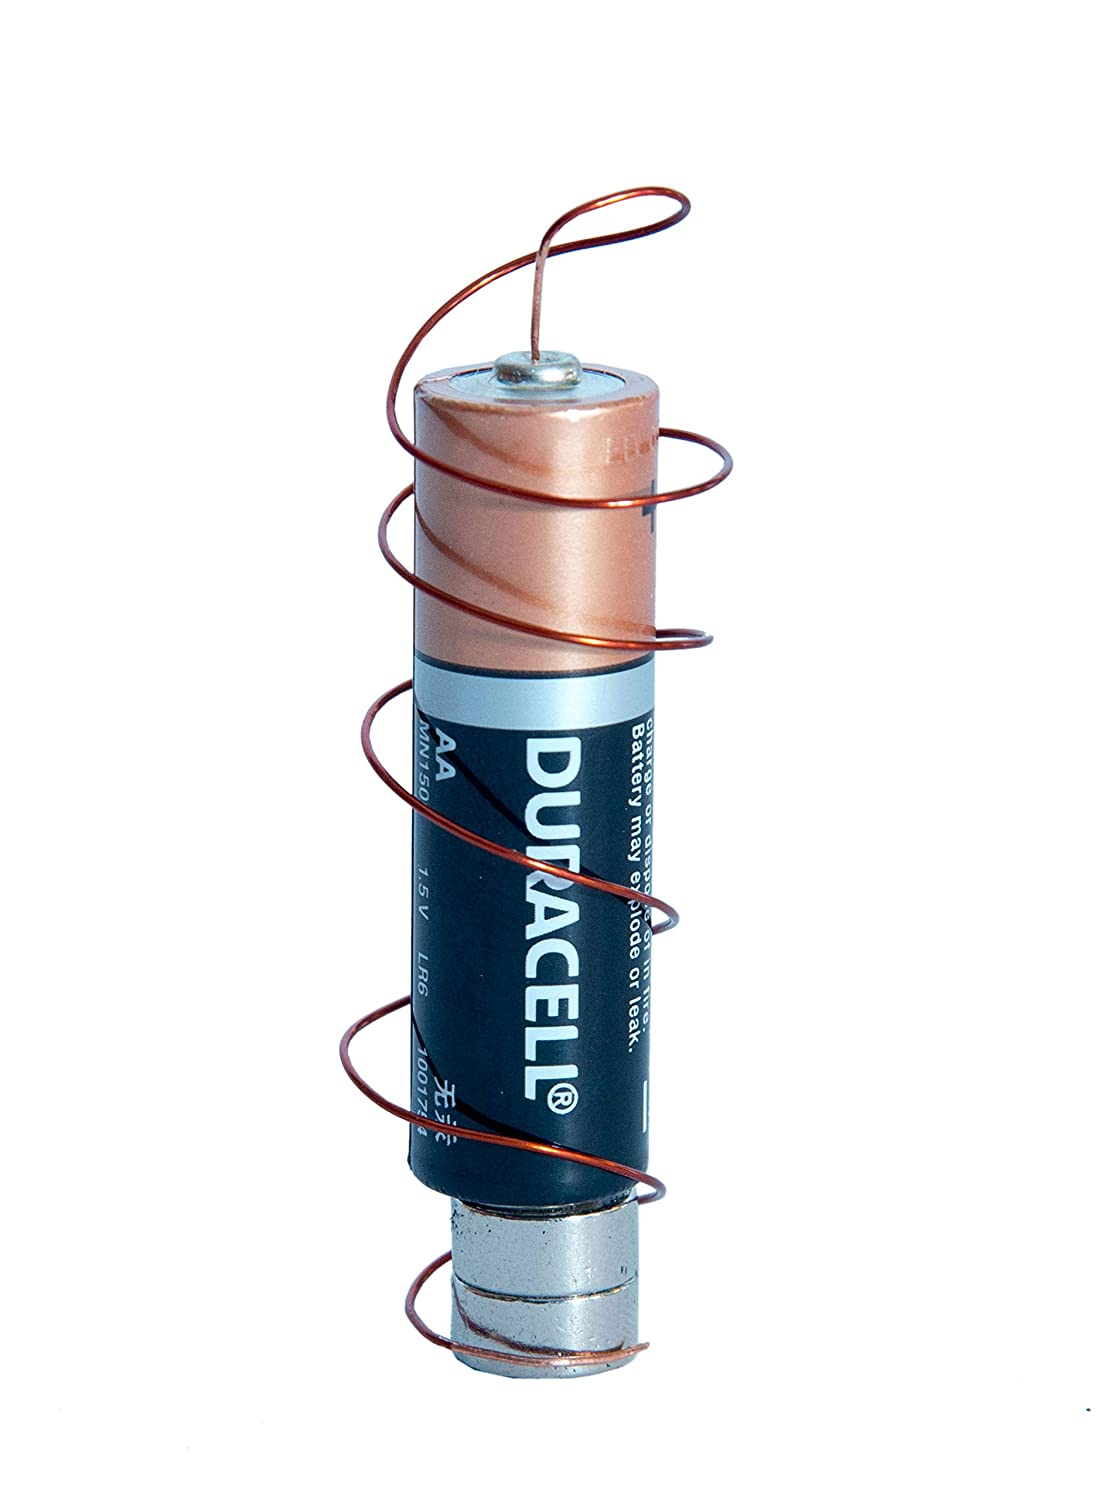 Buy Homopolar Motors Michael Faraday Online At Low Prices In India Motor Explanation Electrical Measurement